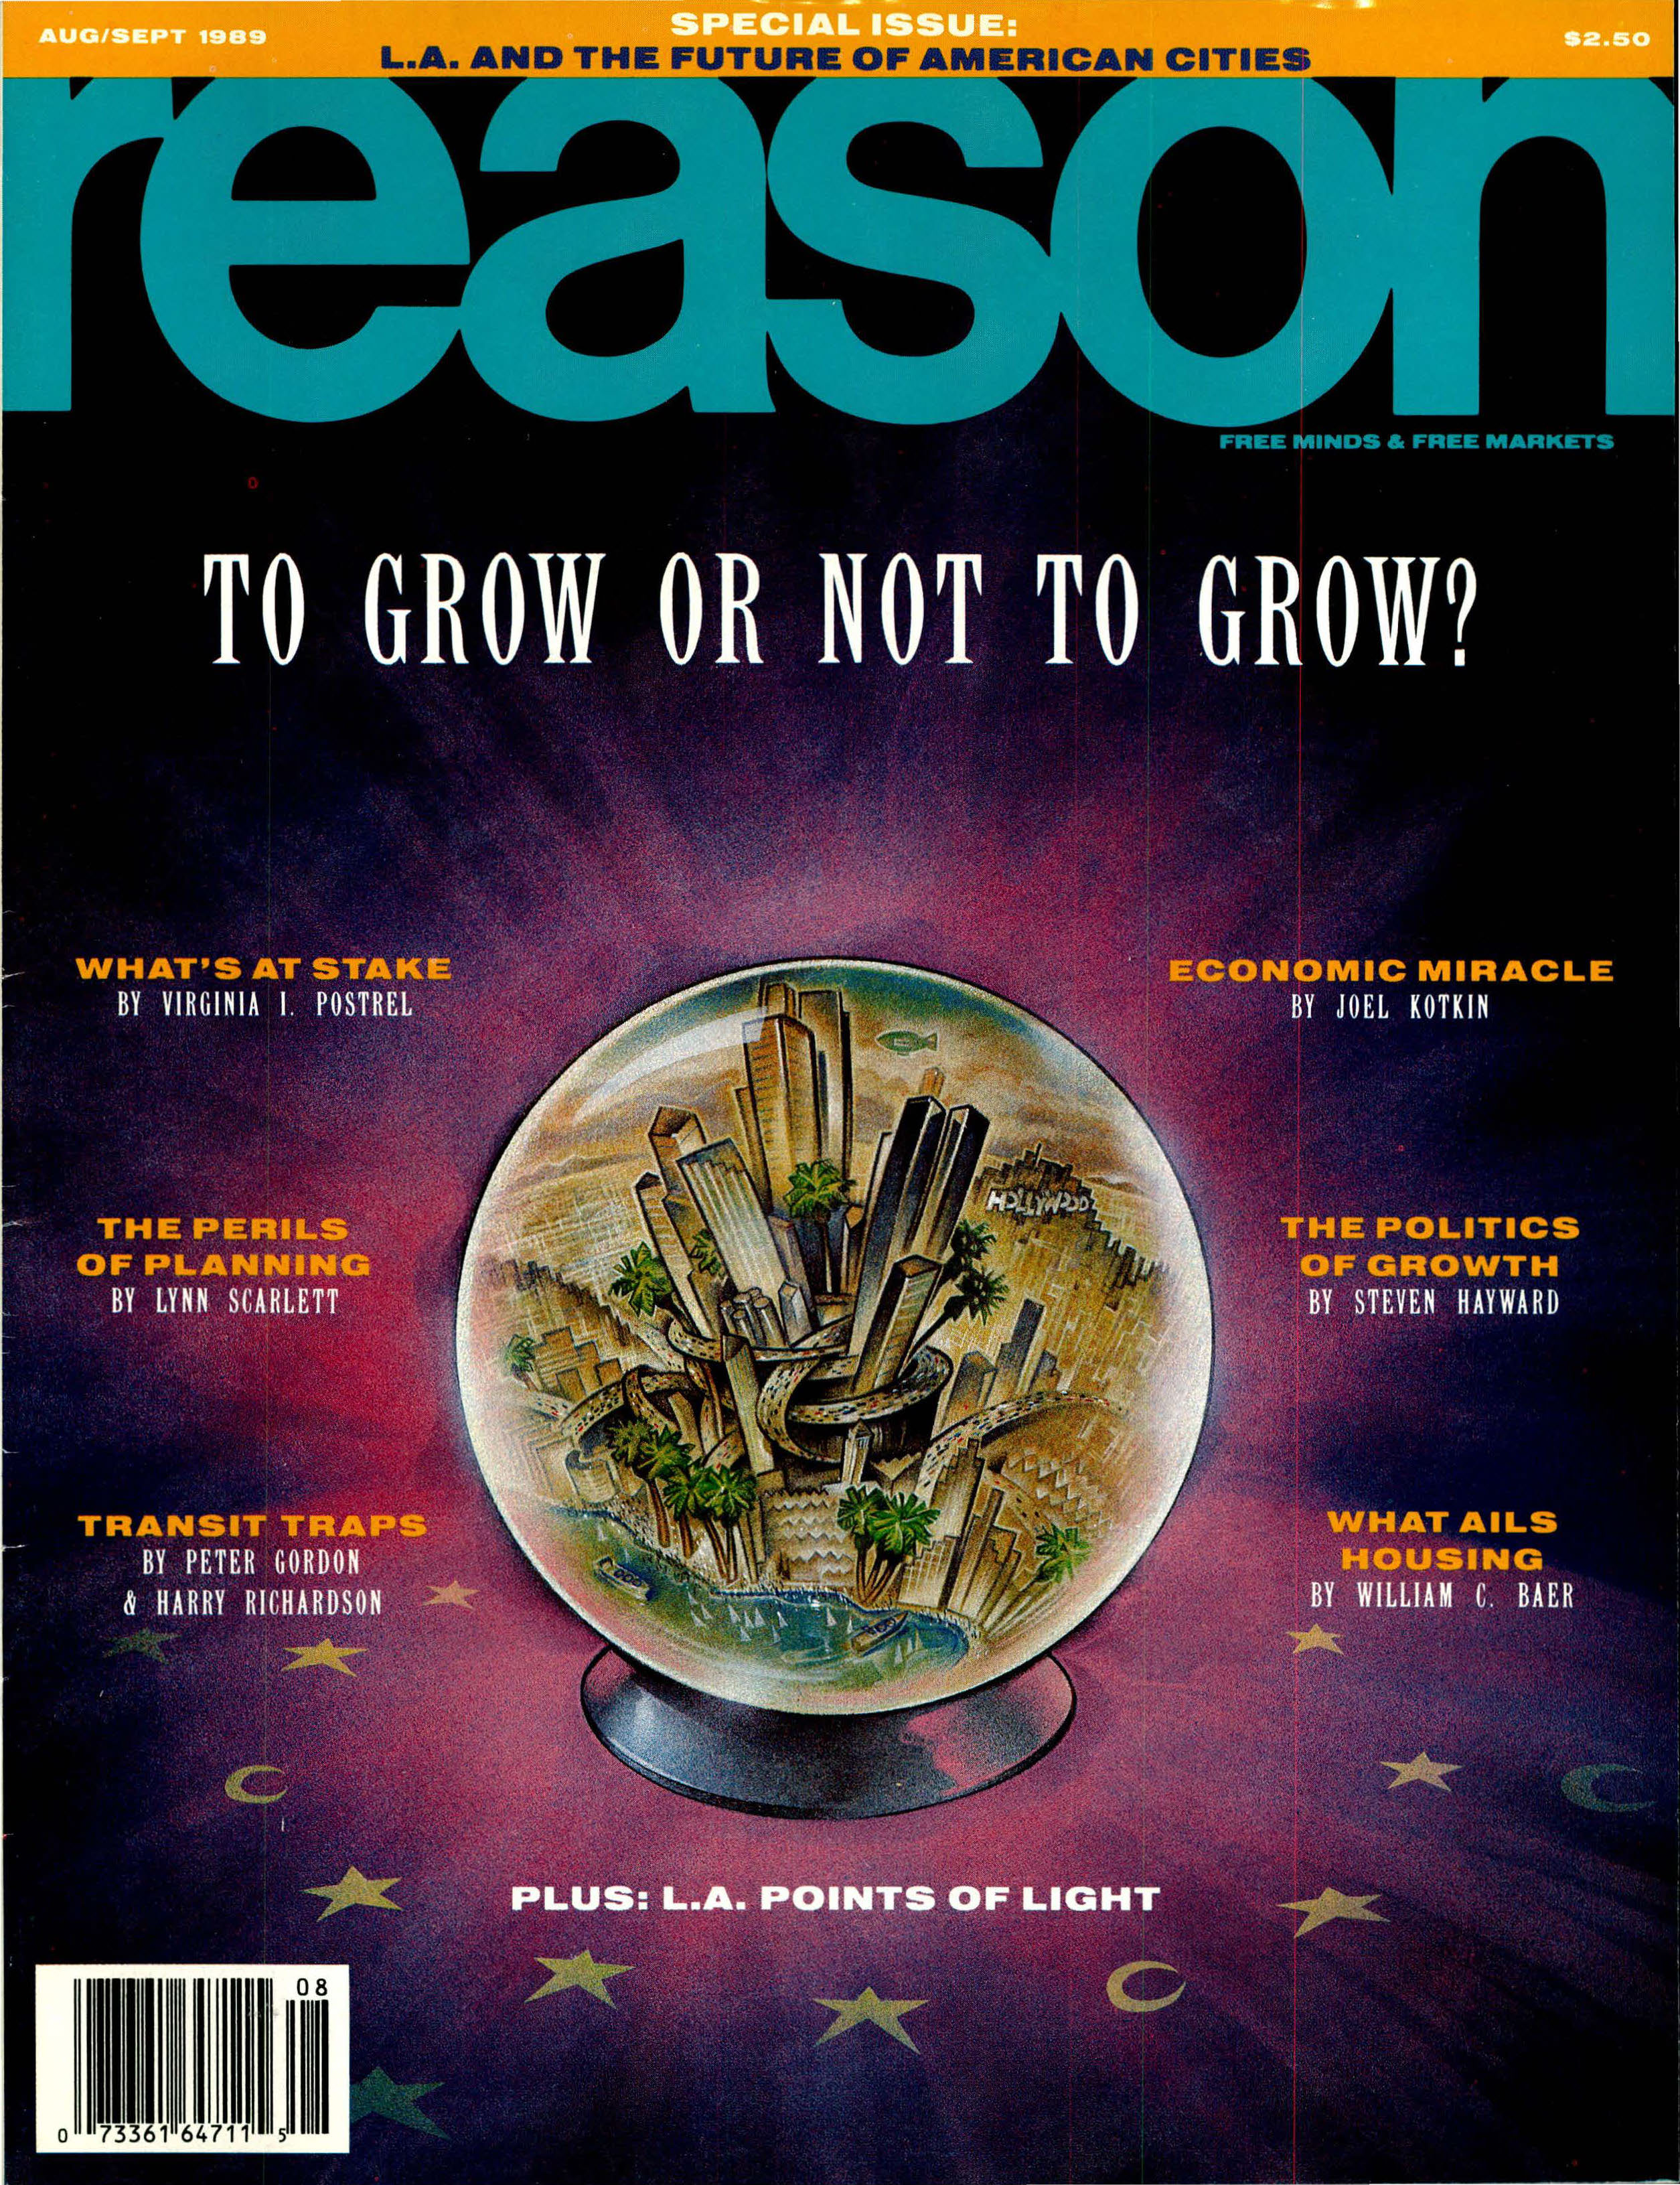 Reason Magazine, August/September 1989 cover image